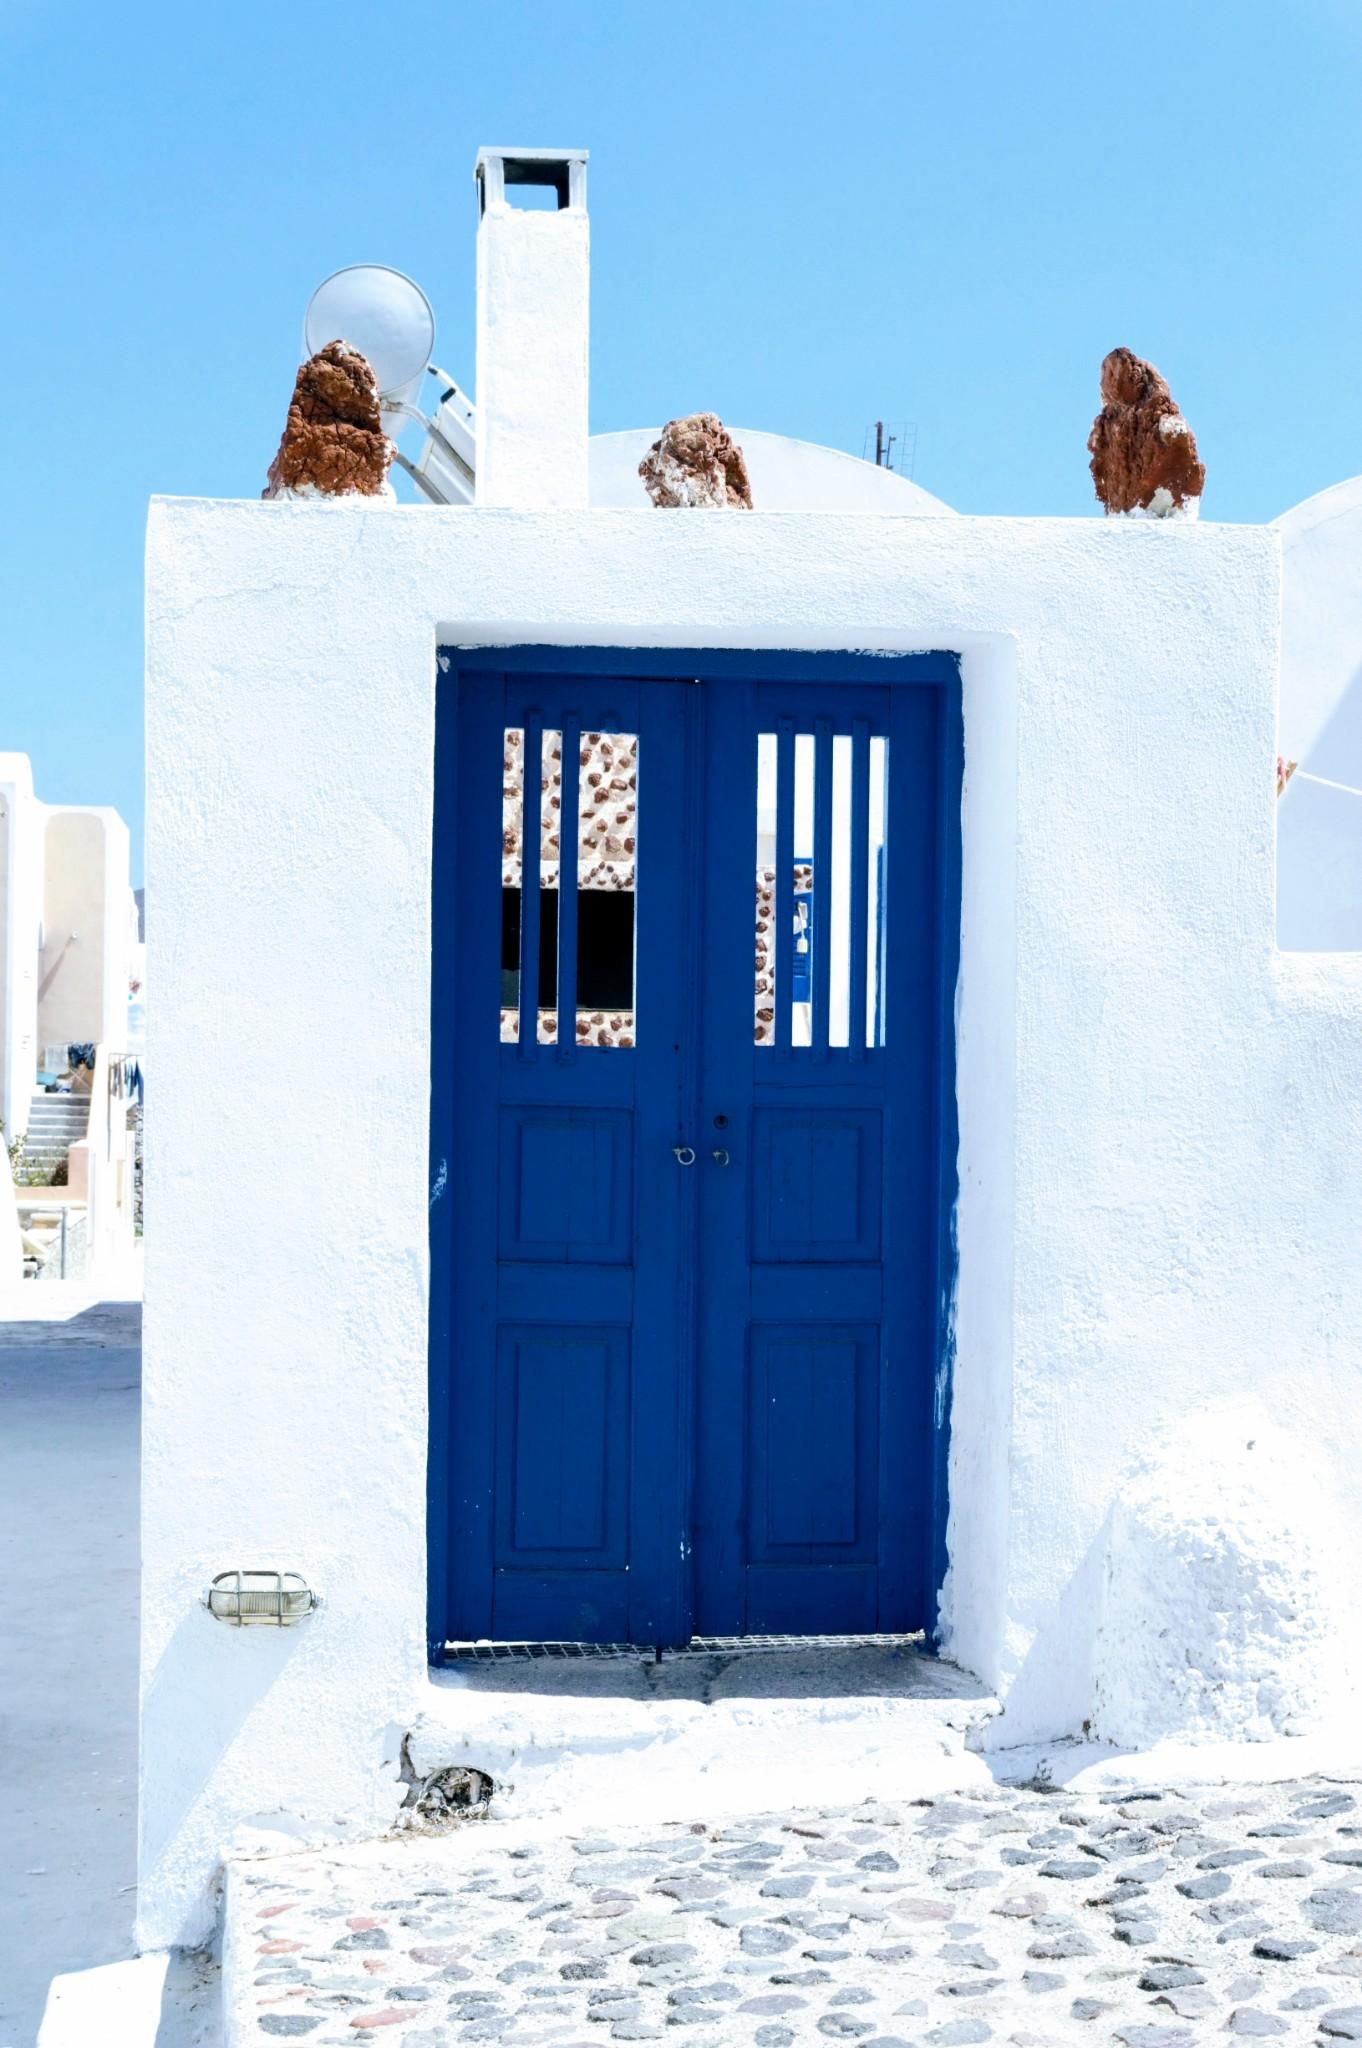 Oia blue doors - Honeymoon Part 2 - Oia in Santorini Greece is beautiful with its pretty caldera view, sunsets, windmills and quaint pedestrian streets, we headed here for our Honeymoon Part 2! - Greek Island, Europe - Veritru